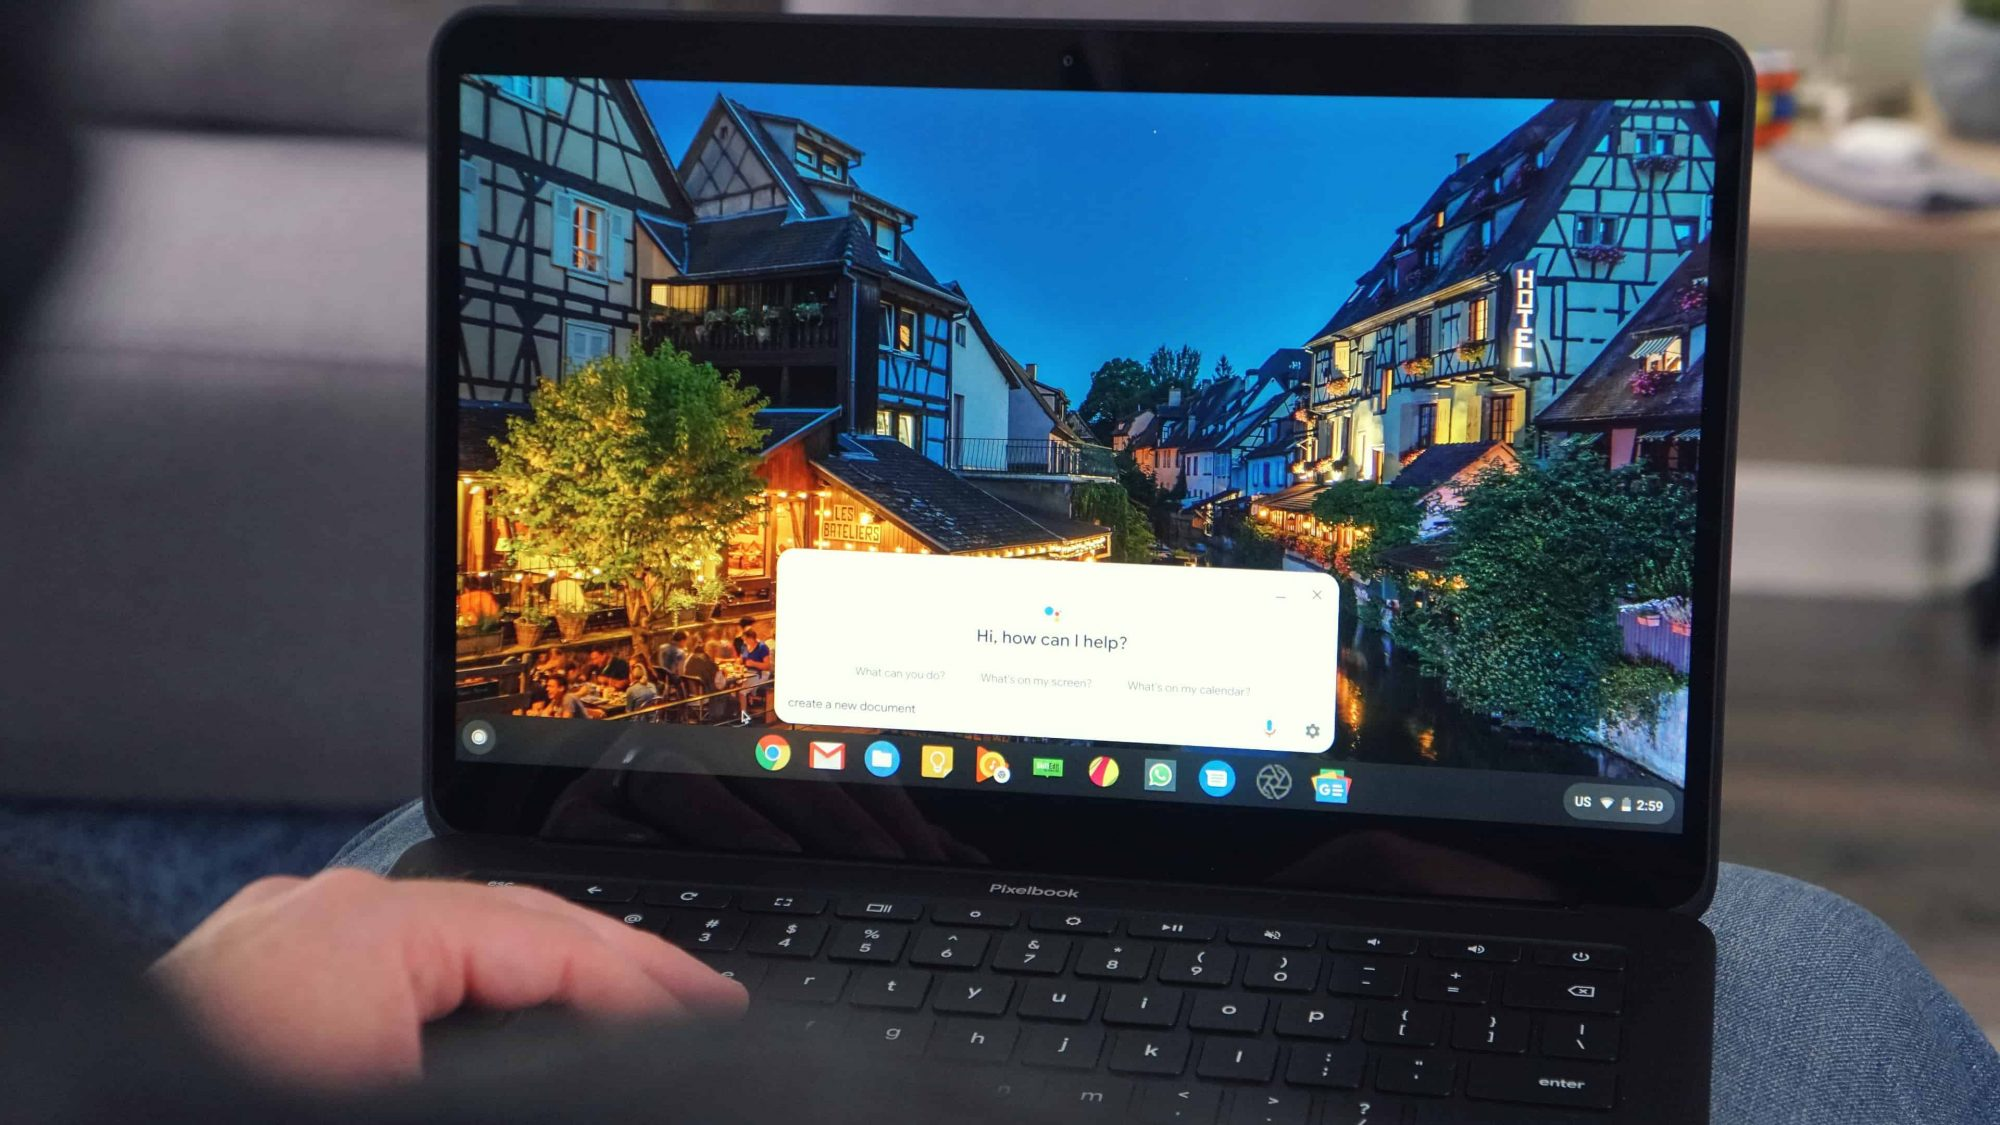 5 best ways to leverage Google Assistant on your Chromebook